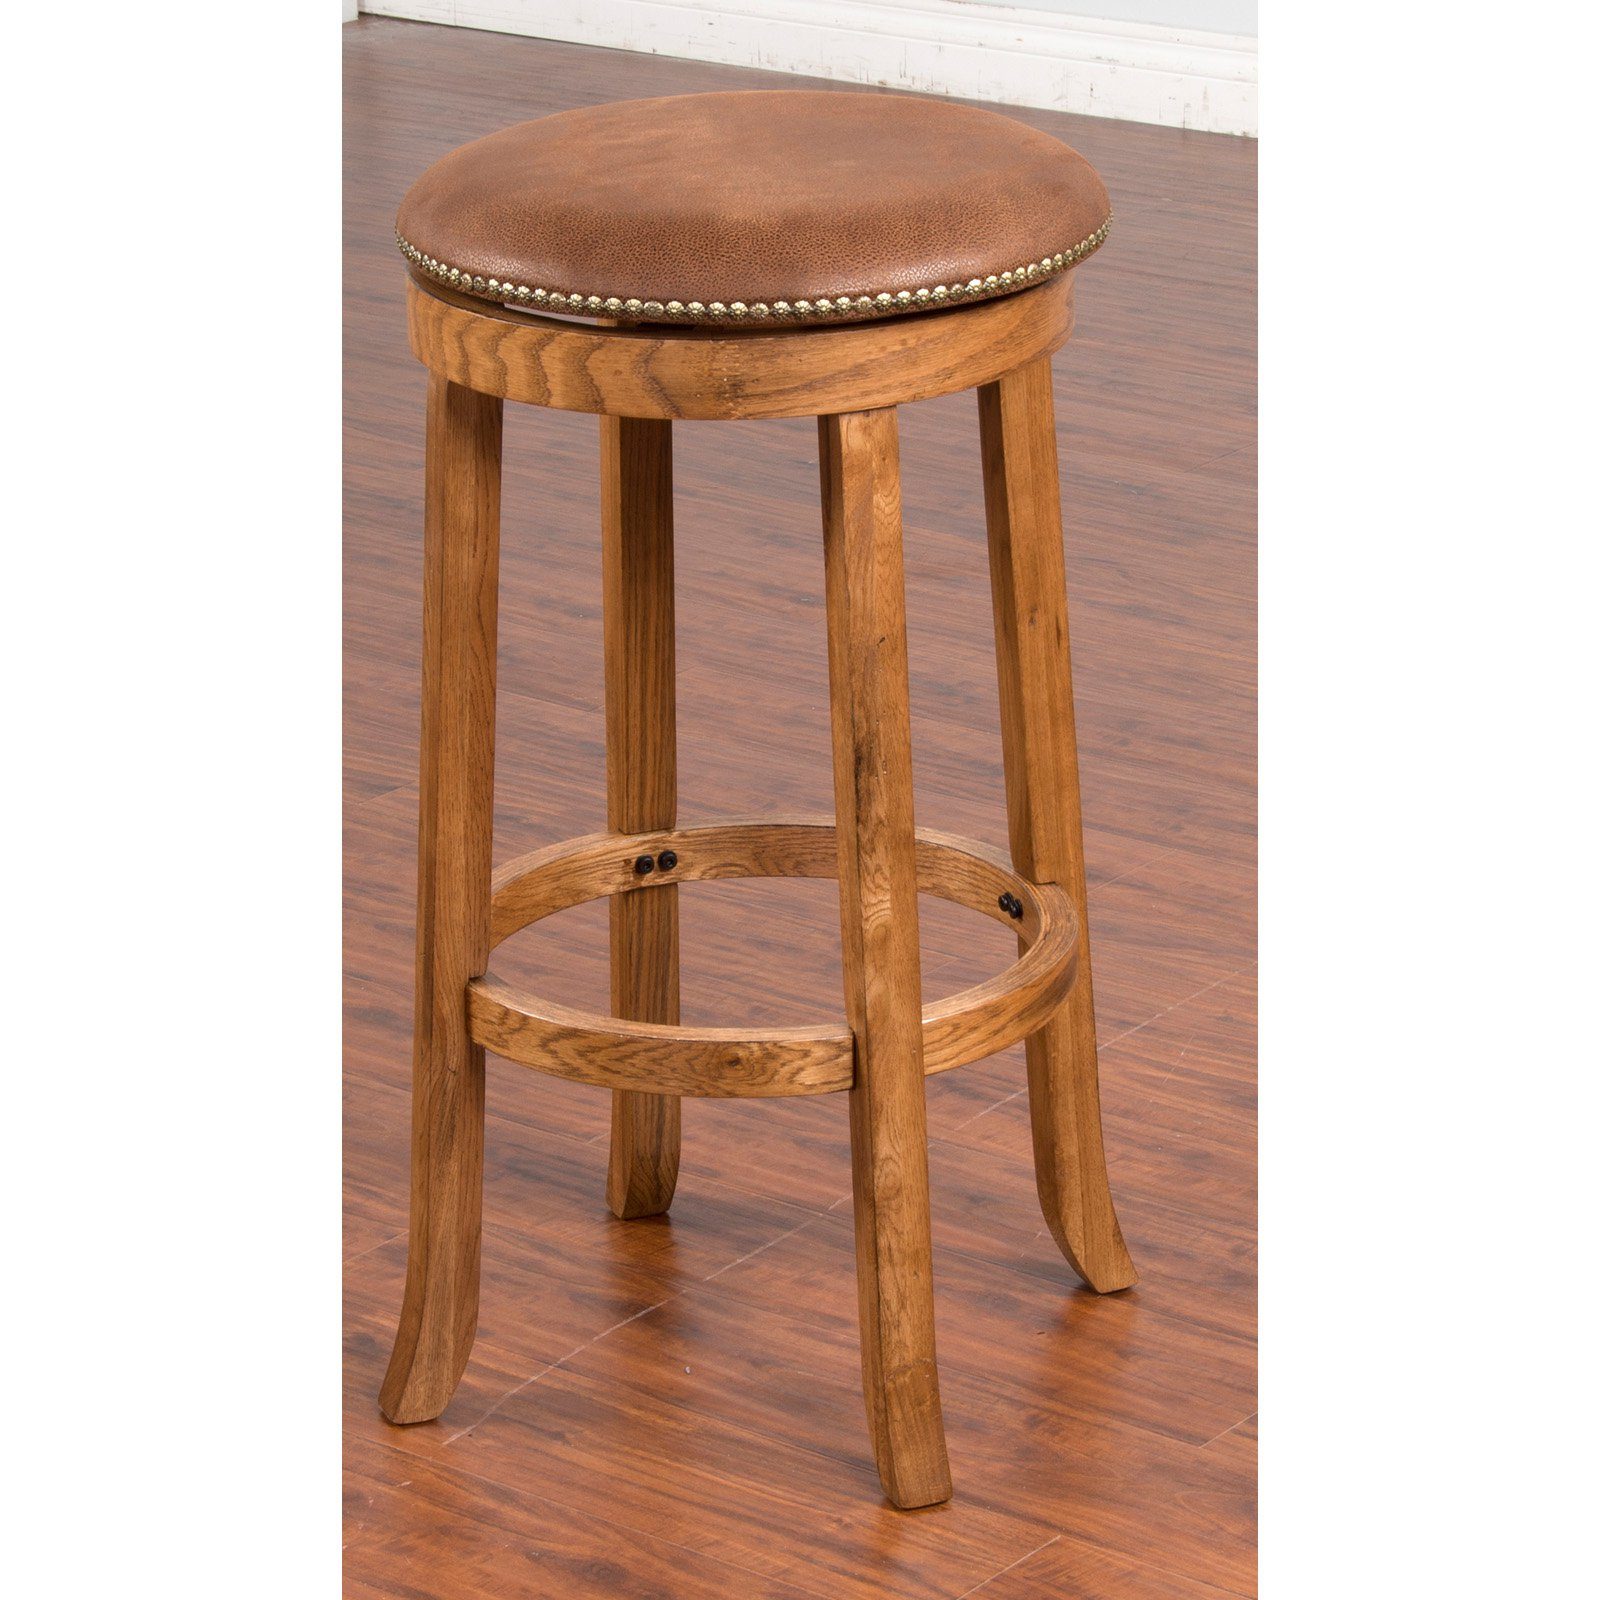 Sunny Designs Sedona 30 in. Backless Swivel Bar Stool